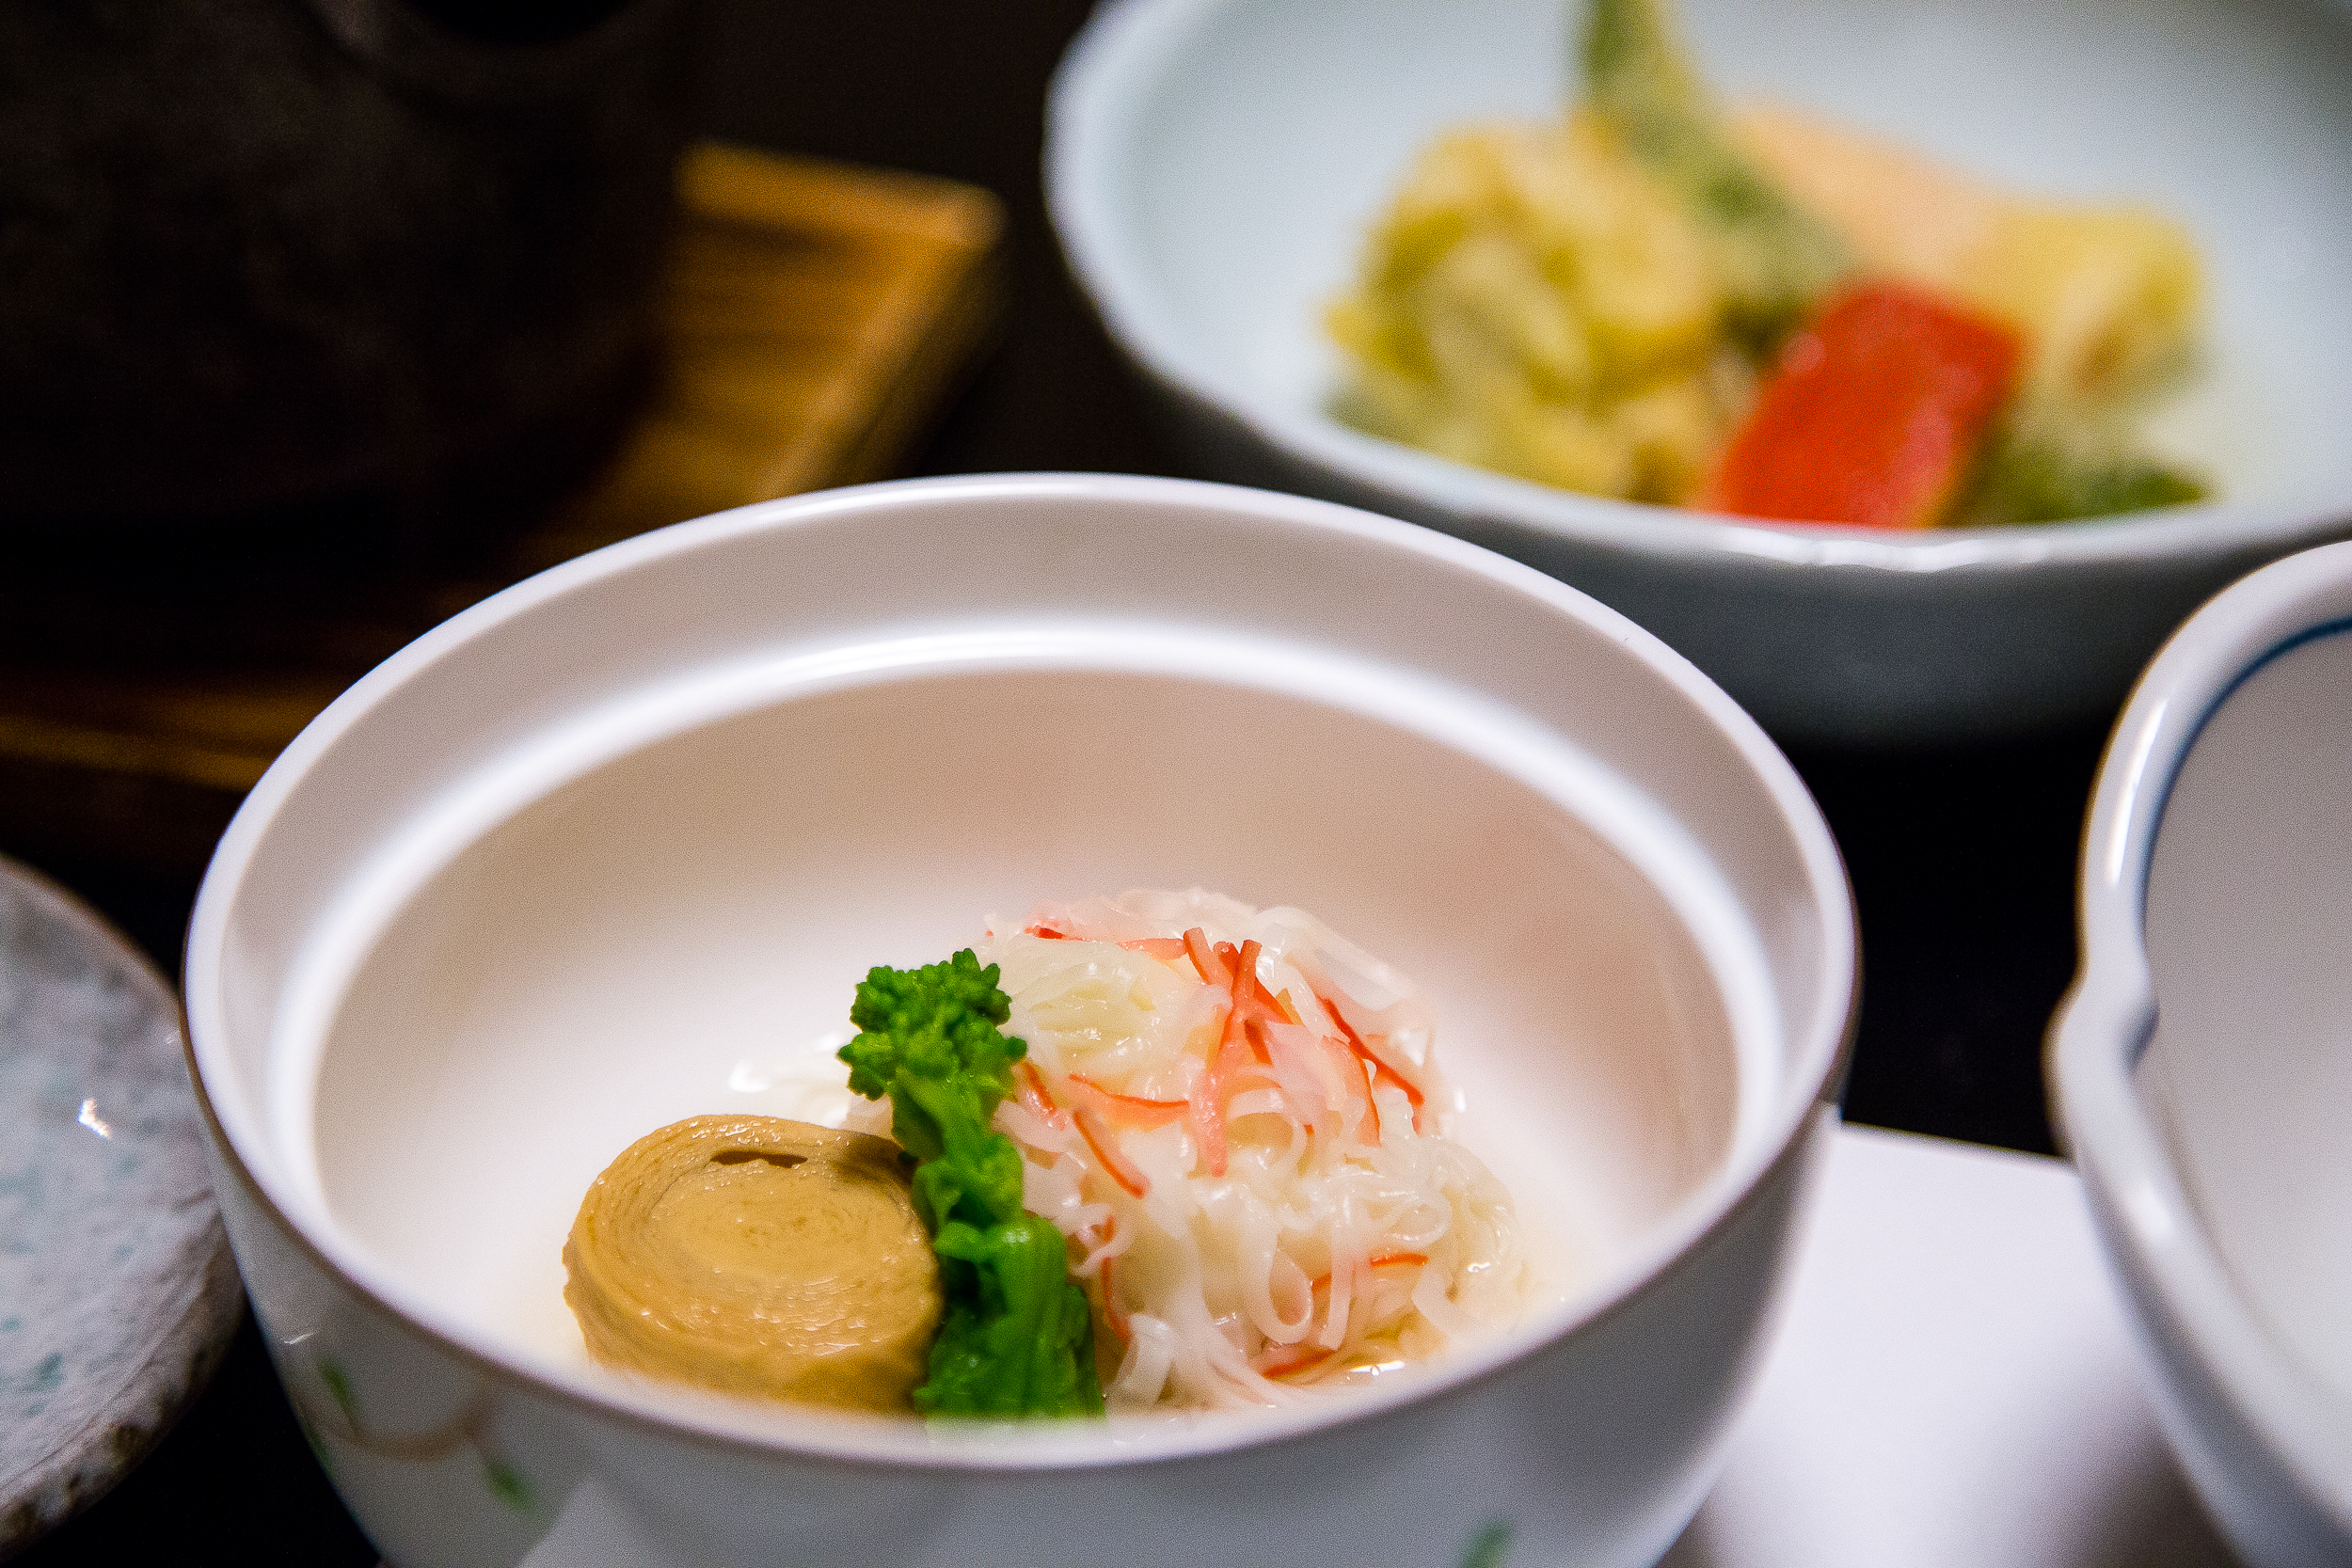 Yuba, vegetable, fish cake covered in crab?